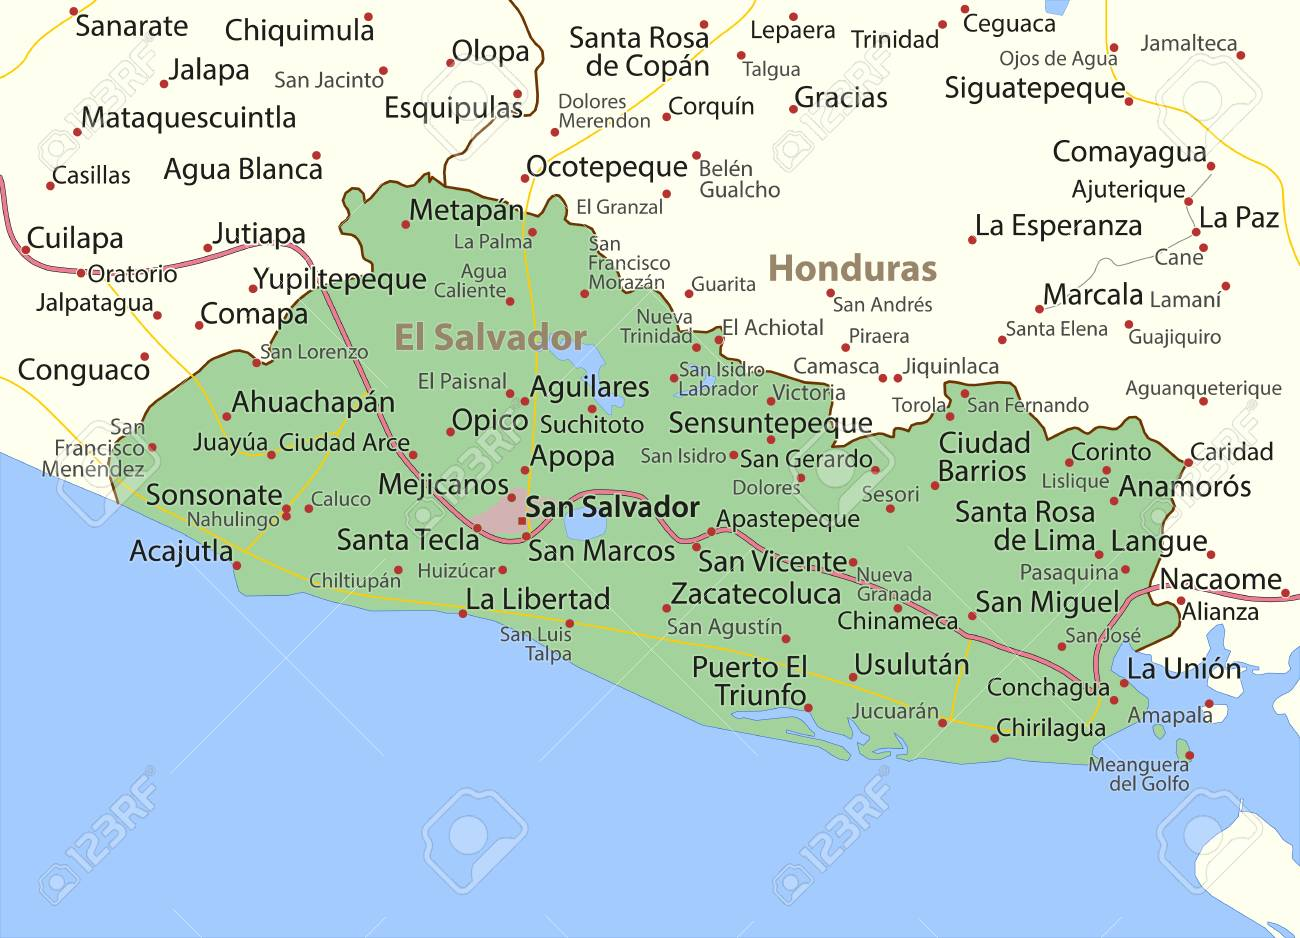 Map of El Salvador. Shows country borders, urban areas, place.. San Salvador Map on ahuachapan map, costa rica map, tenochtitlan on map, caribbean map, bahamas map, guatemala map, uruguay map, colombia map, kingston map, chalatenango map, managua map, panama map, tegucigalpa map, havana map, caracas map, honduras map, central america map, santo domingo map, lima map, nassau map,